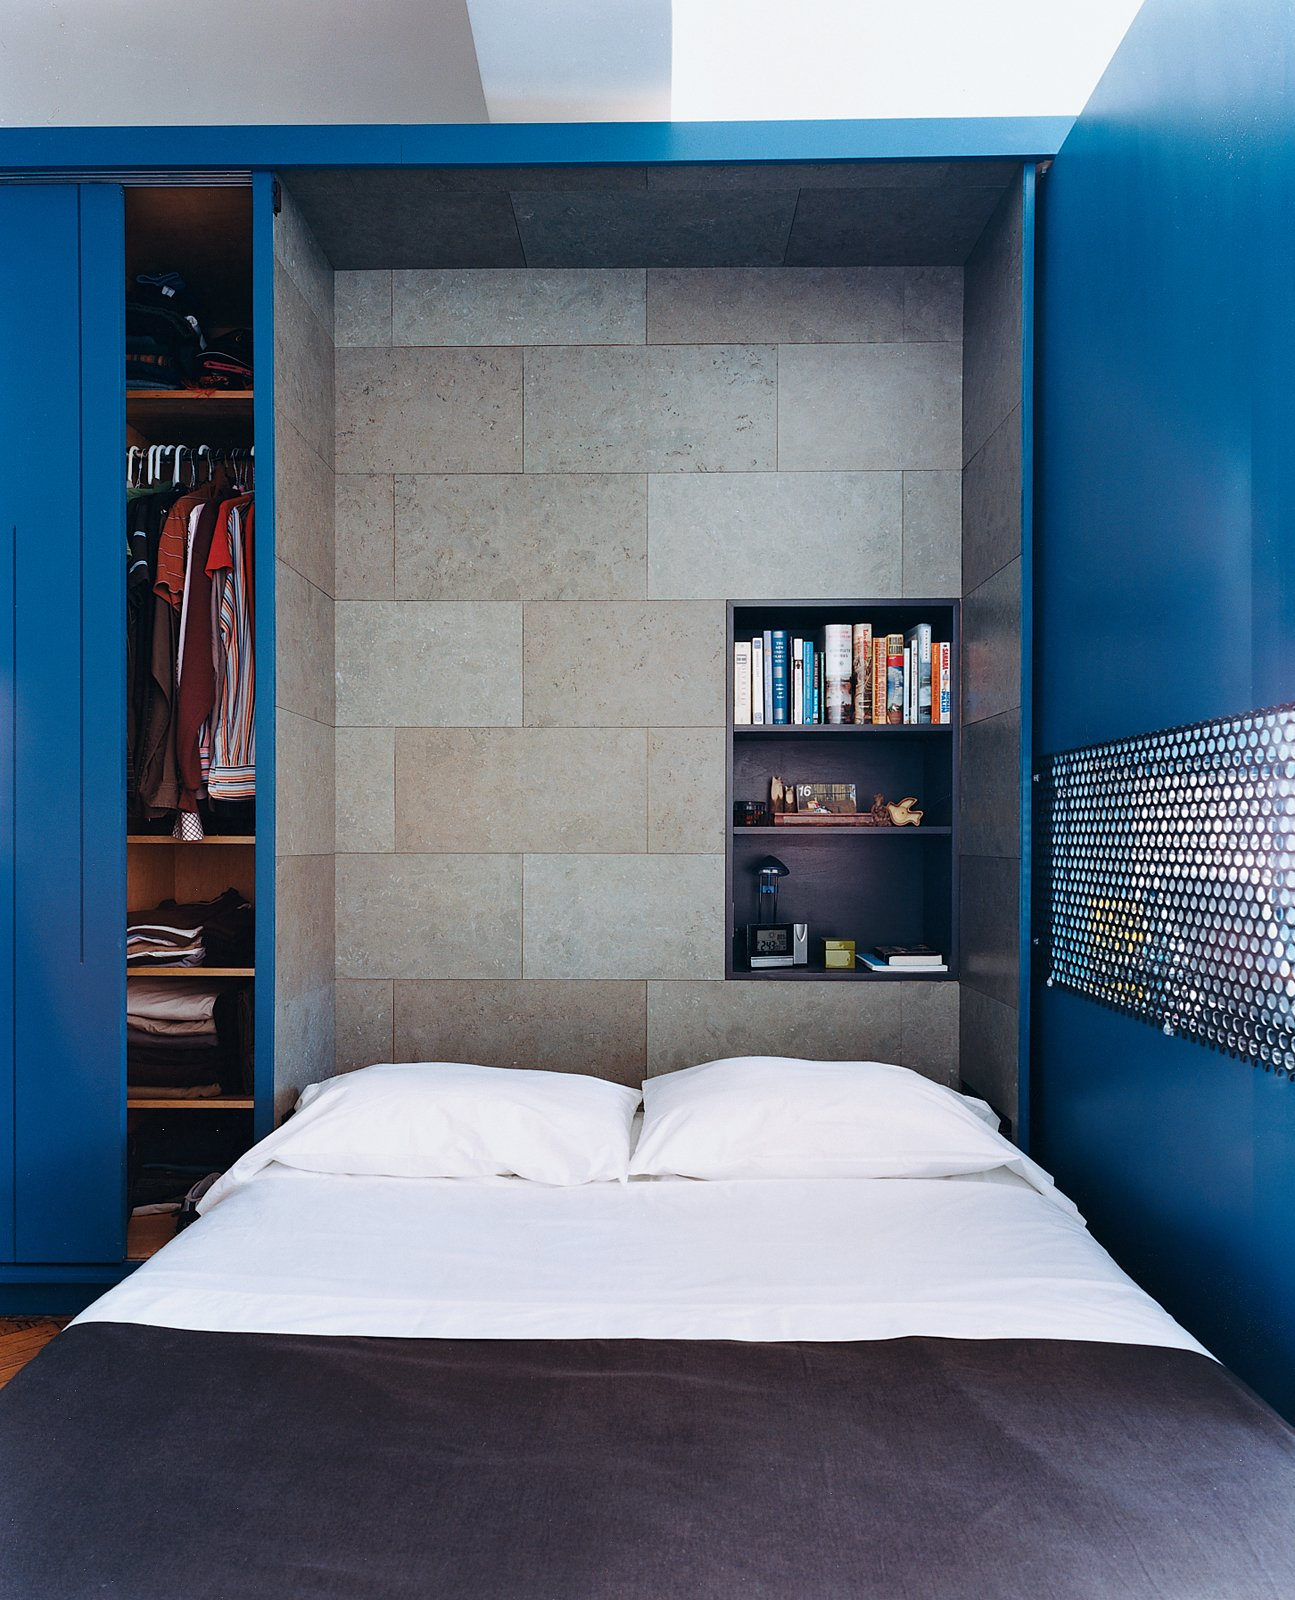 The interior of the Murphy bed compartment is lined with a stained cork panel and contains a smaller shelving unit for bedside reading, alarm clock, and reading lamp.  Bedrooms by Dwell from You Can Do It All in 450 Square Feet